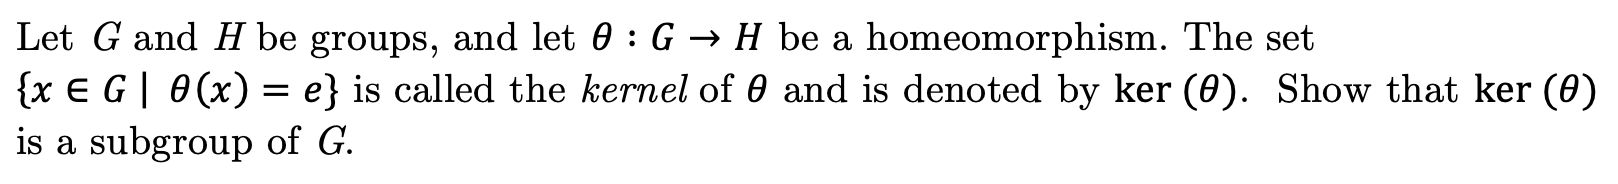 Let G and H be groups, and let 0 : G -» H be a {x E G 0(x) = e} is called the kernel of 0 and is denoted by ker (0). Show that ker (e) is a subgroup of G homeomorphism. The set